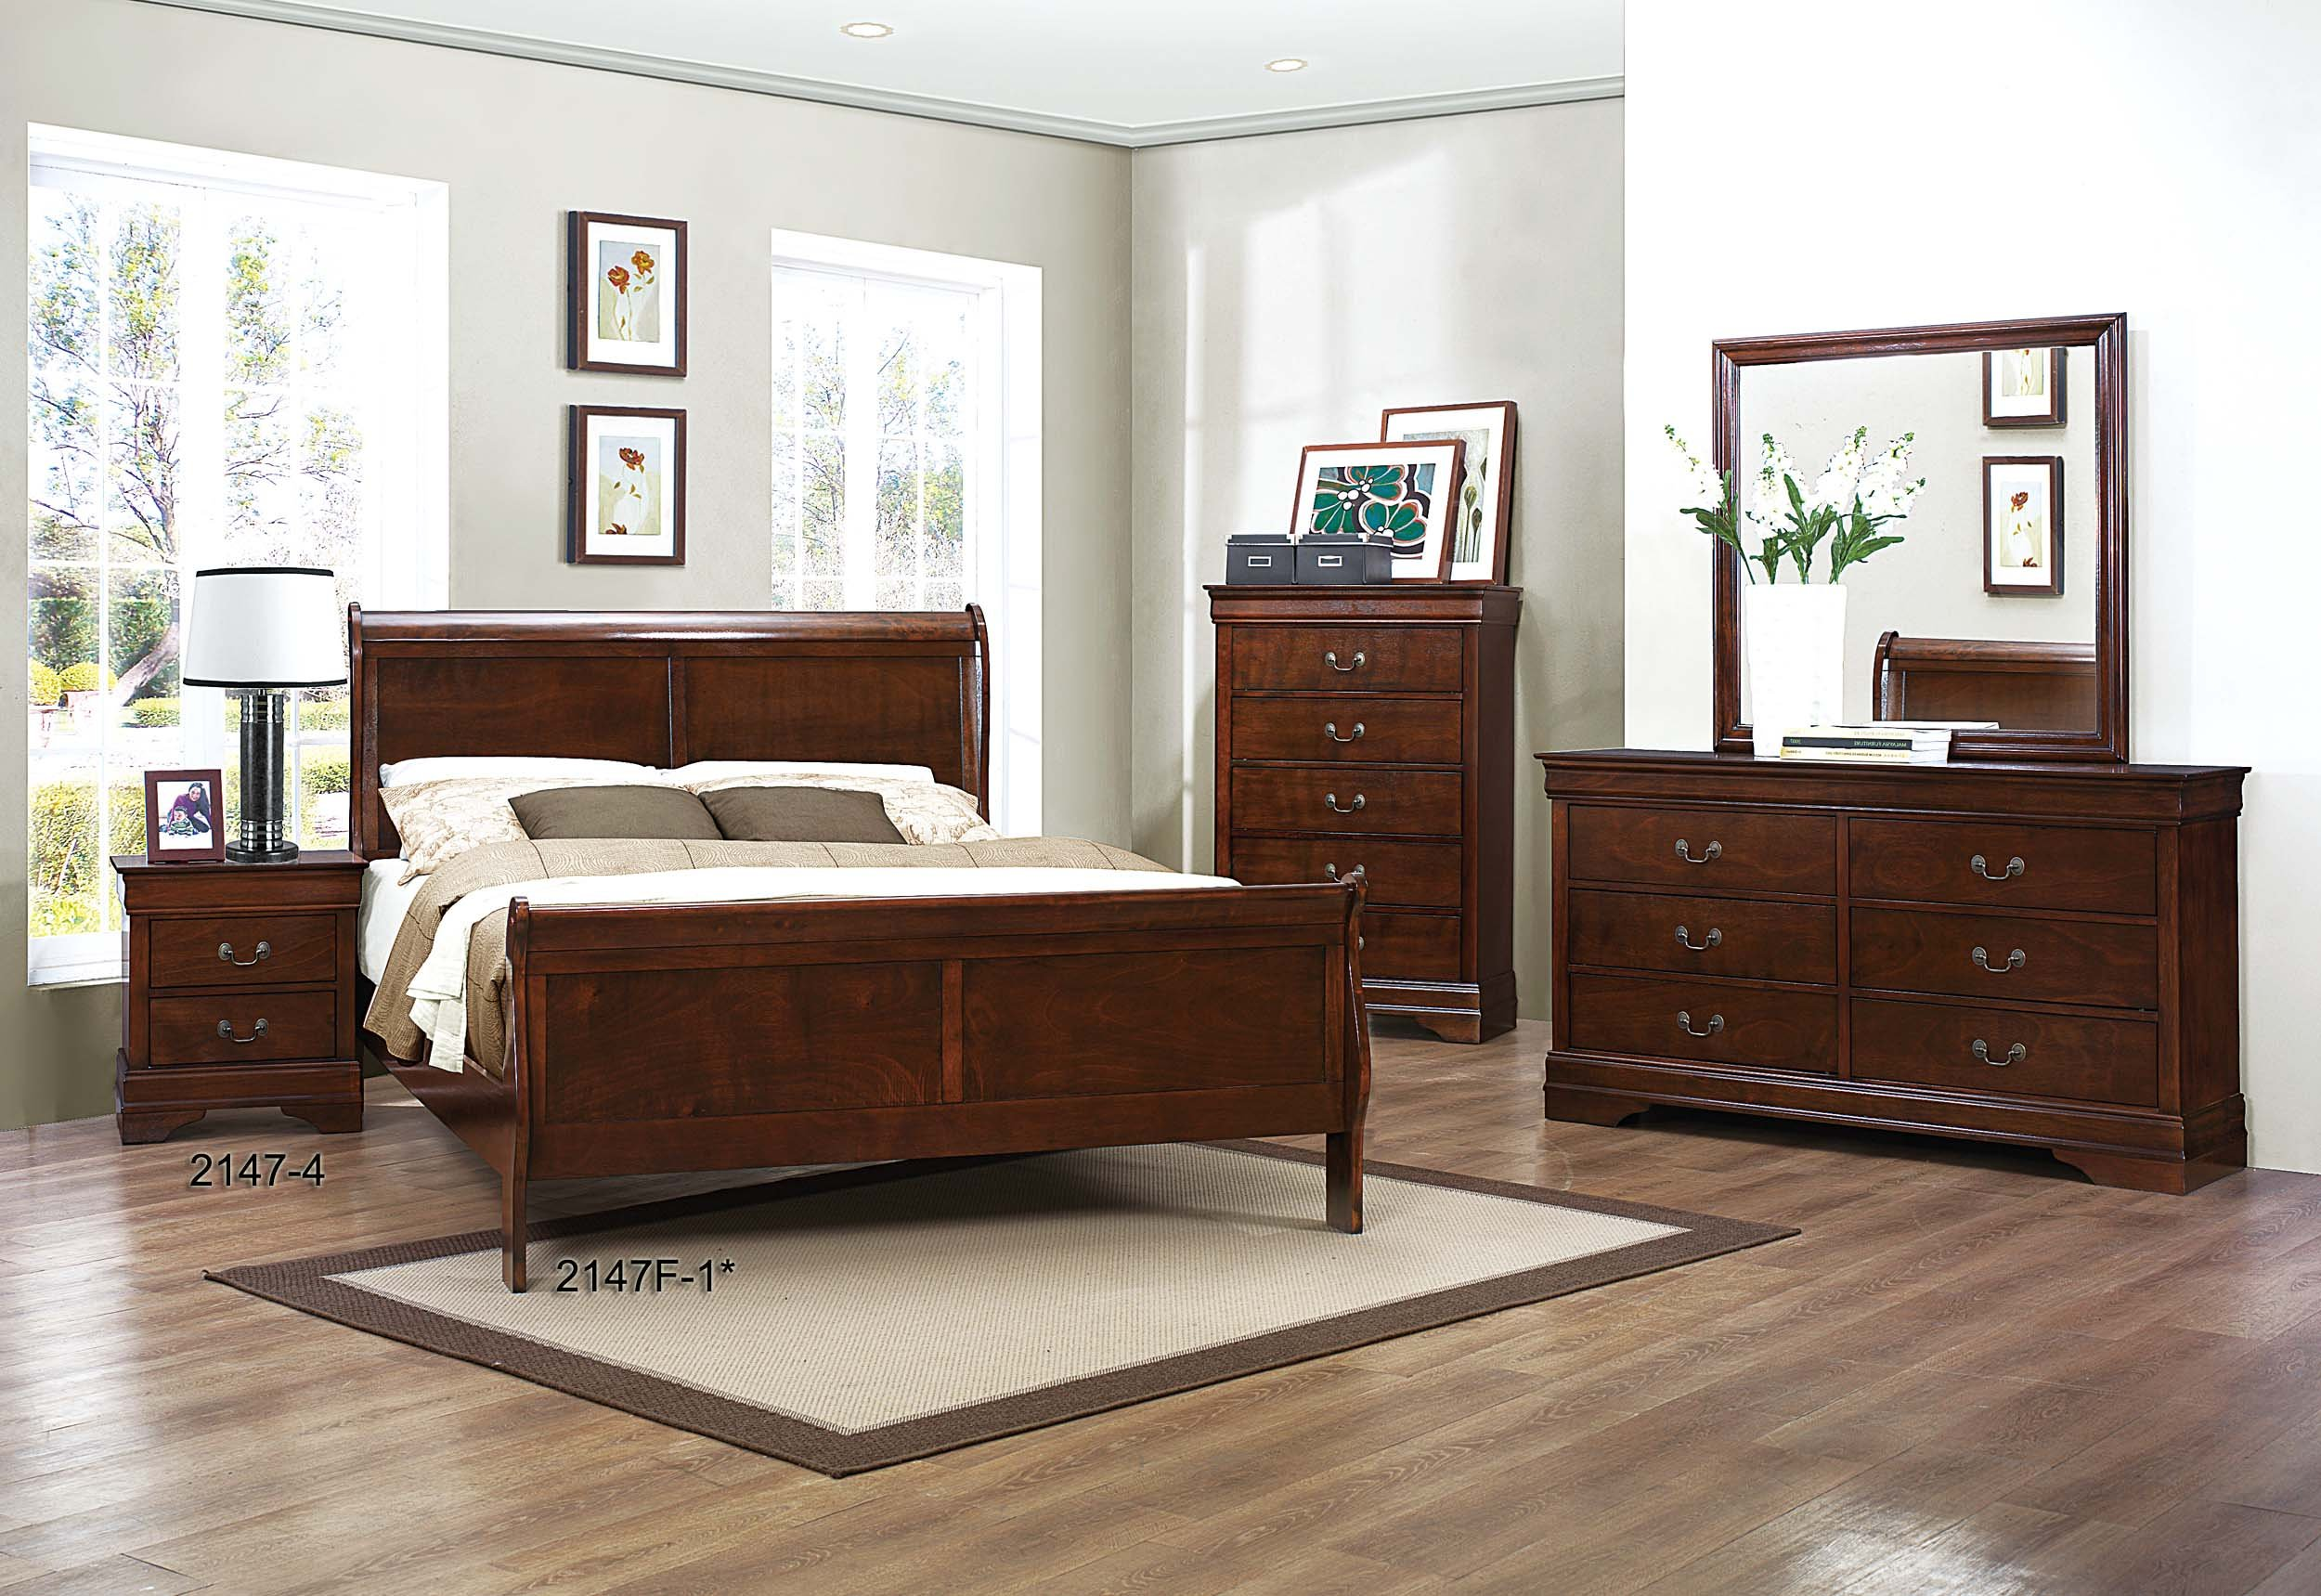 Homelegance Mayville Full Sleigh Bed Frame, Cherry by Homelegance (Image #3)